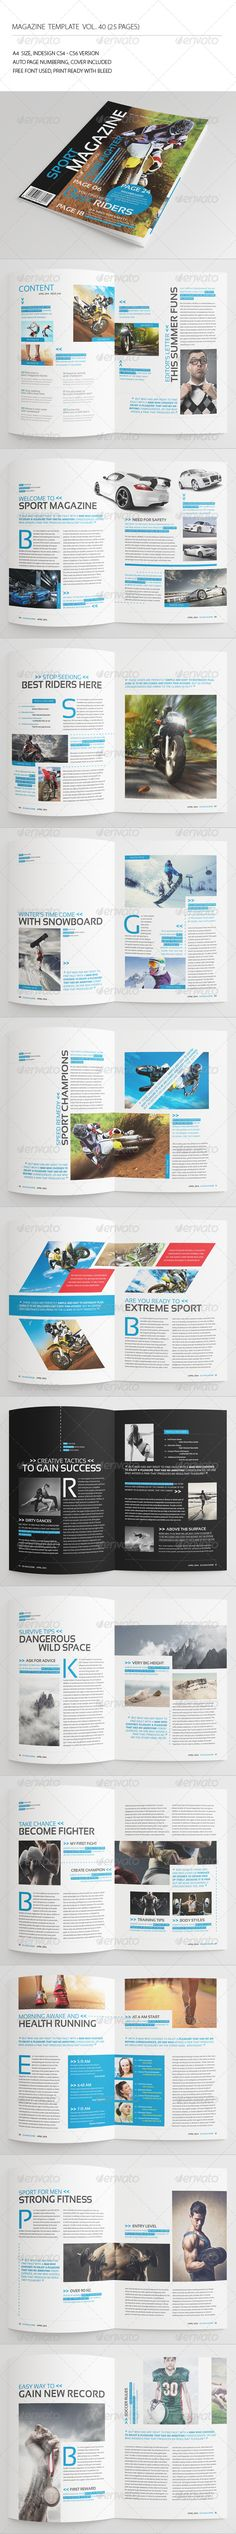 25 Pages Sport Magazine Vol40 — InDesign INDD #fitness #extreme • Available here → https://graphicriver.net/item/25-pages-sport-magazine-vol40/7359187?ref=pxcr